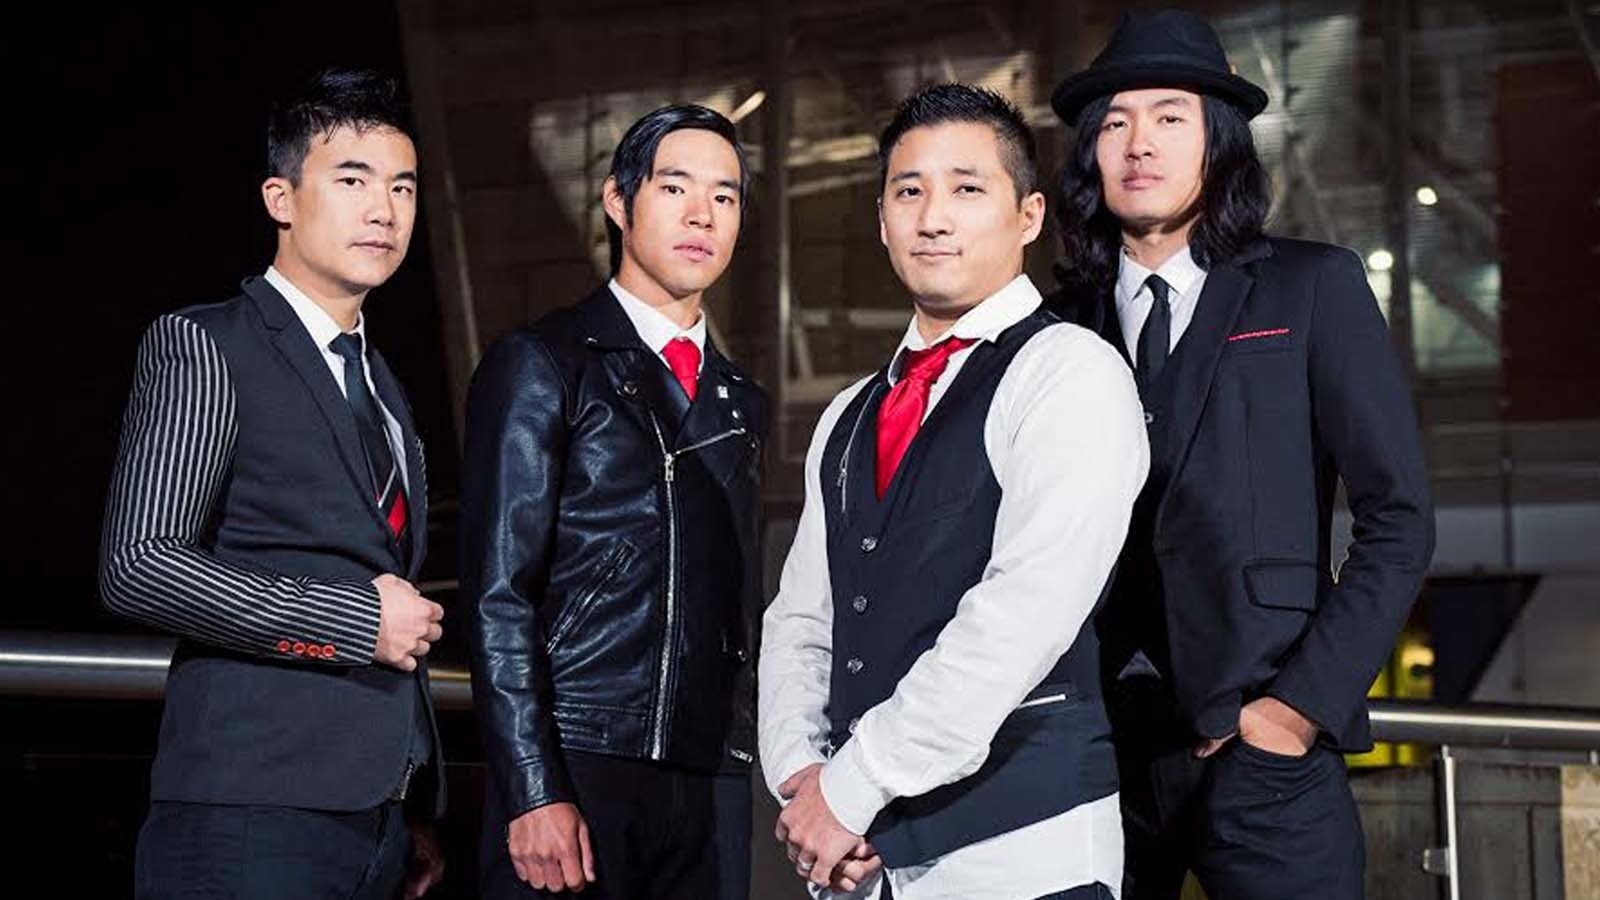 American band the Slants win Supreme Court battle over trademark